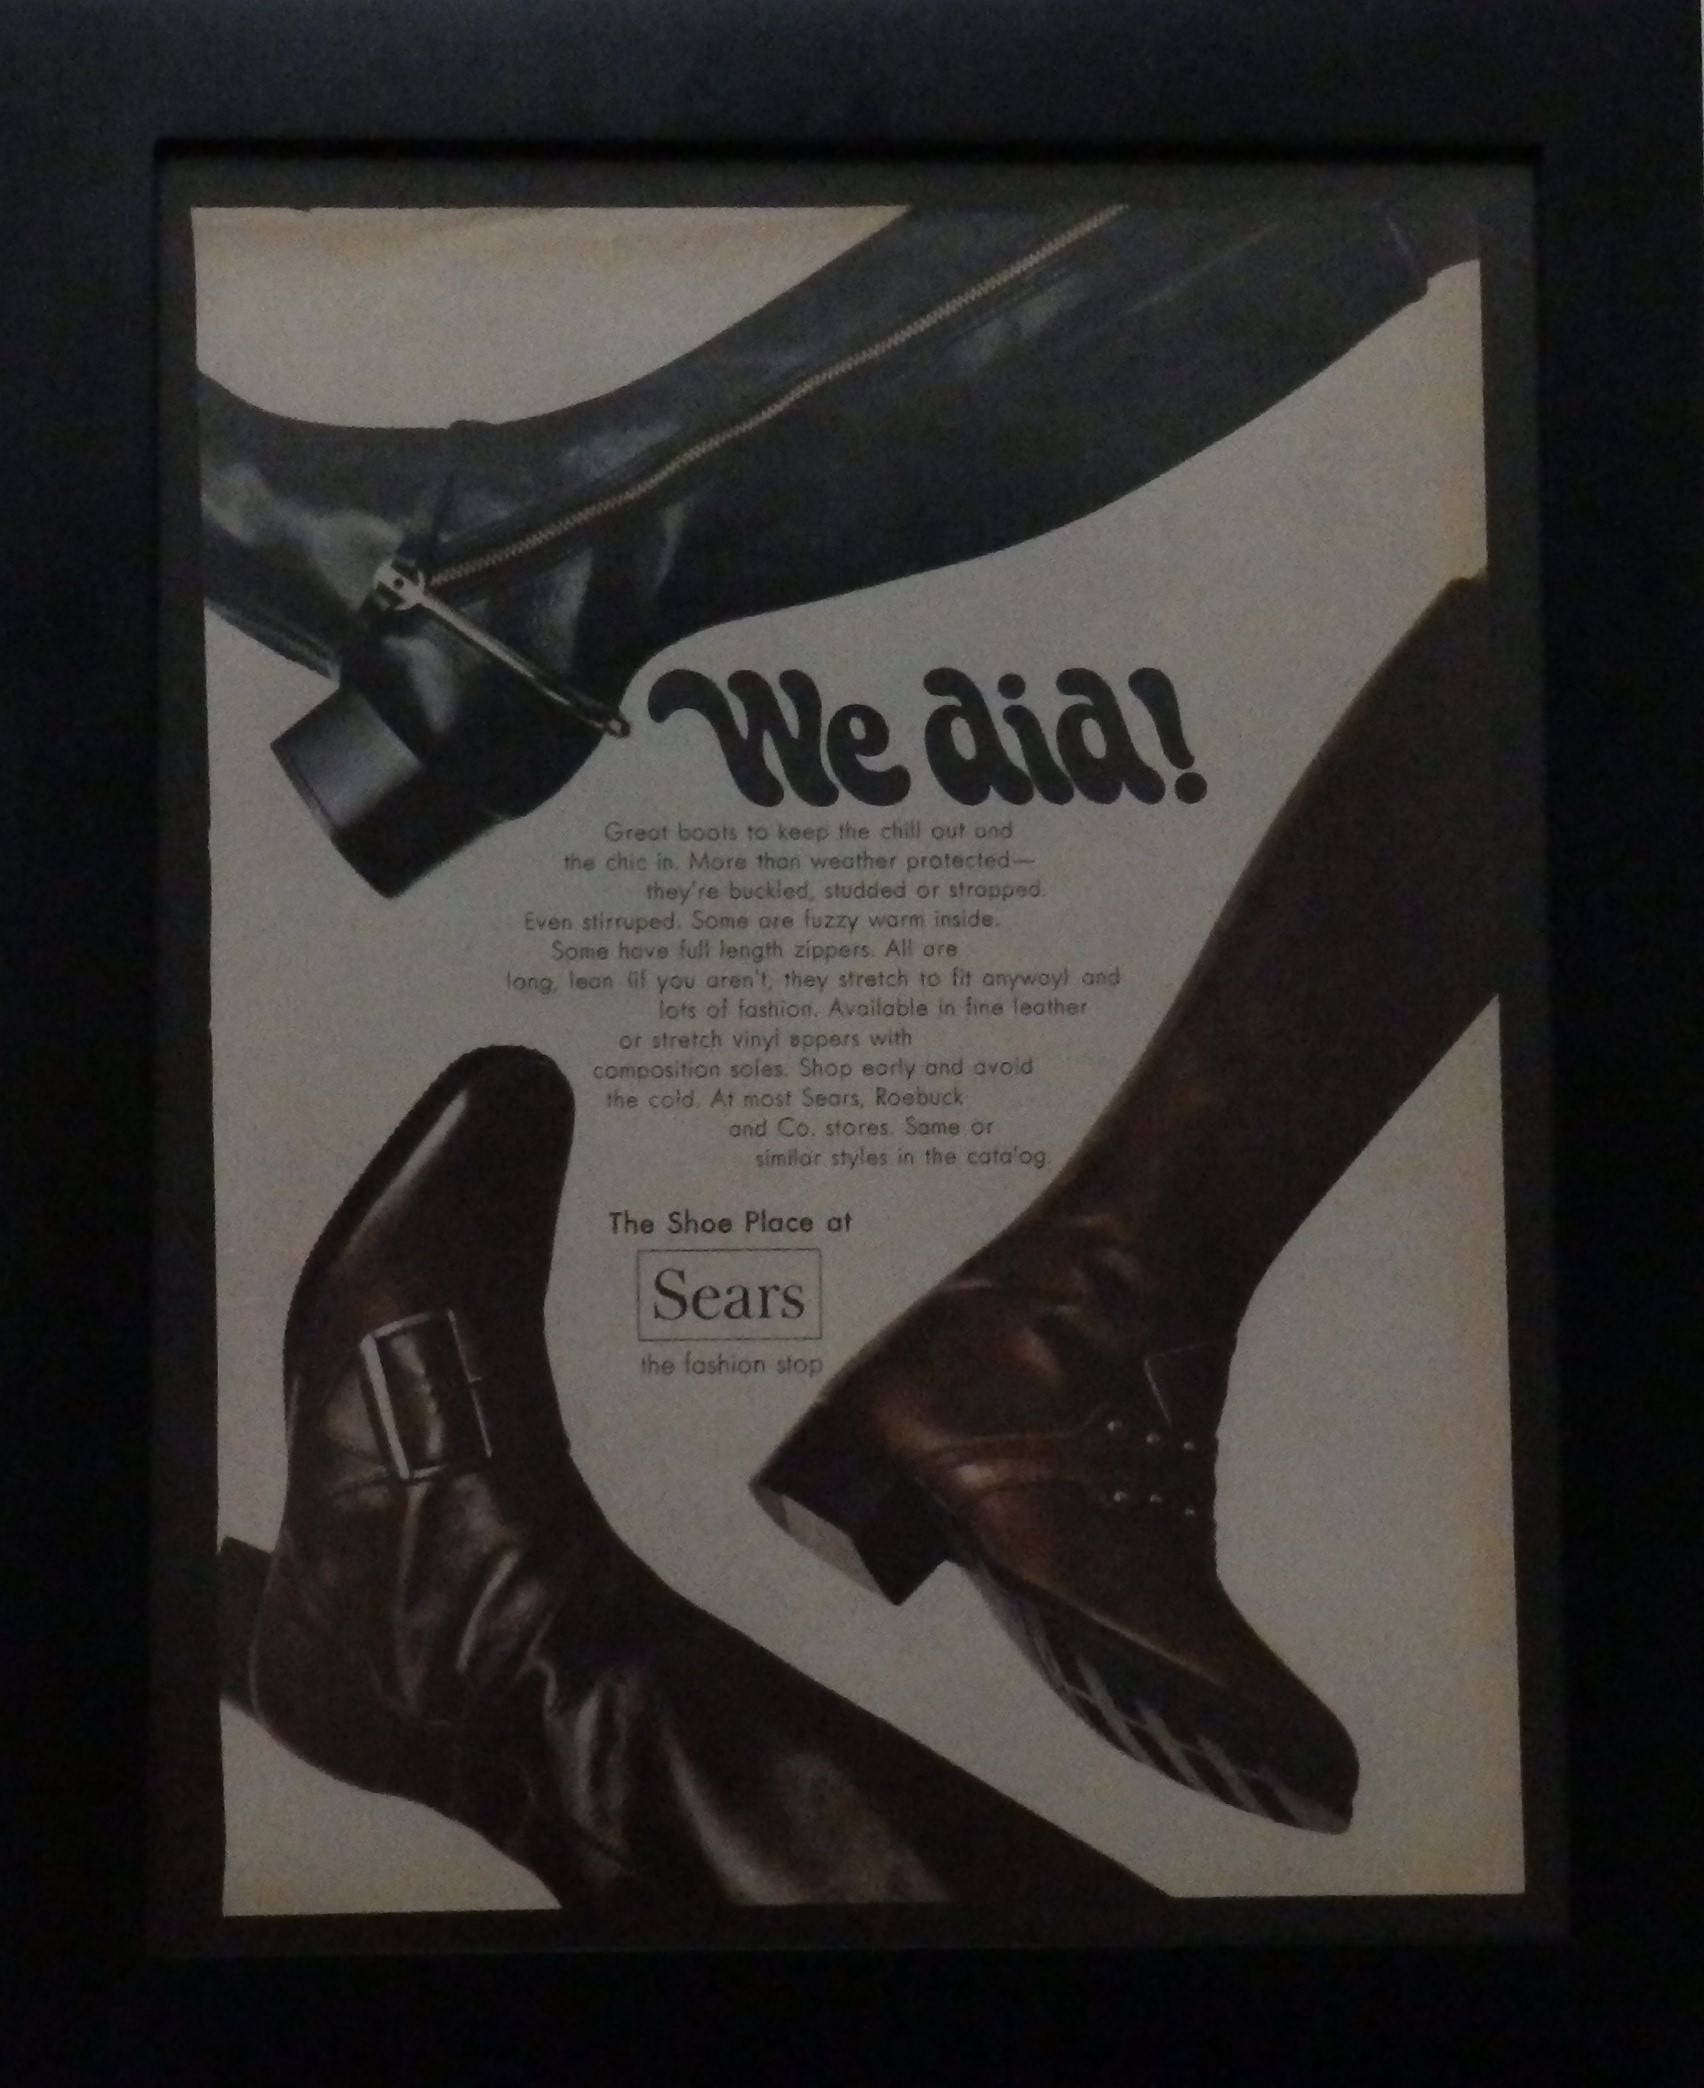 6c52ab6609a Boots, Vintage Ad, Women's Boots, Sears, 1969